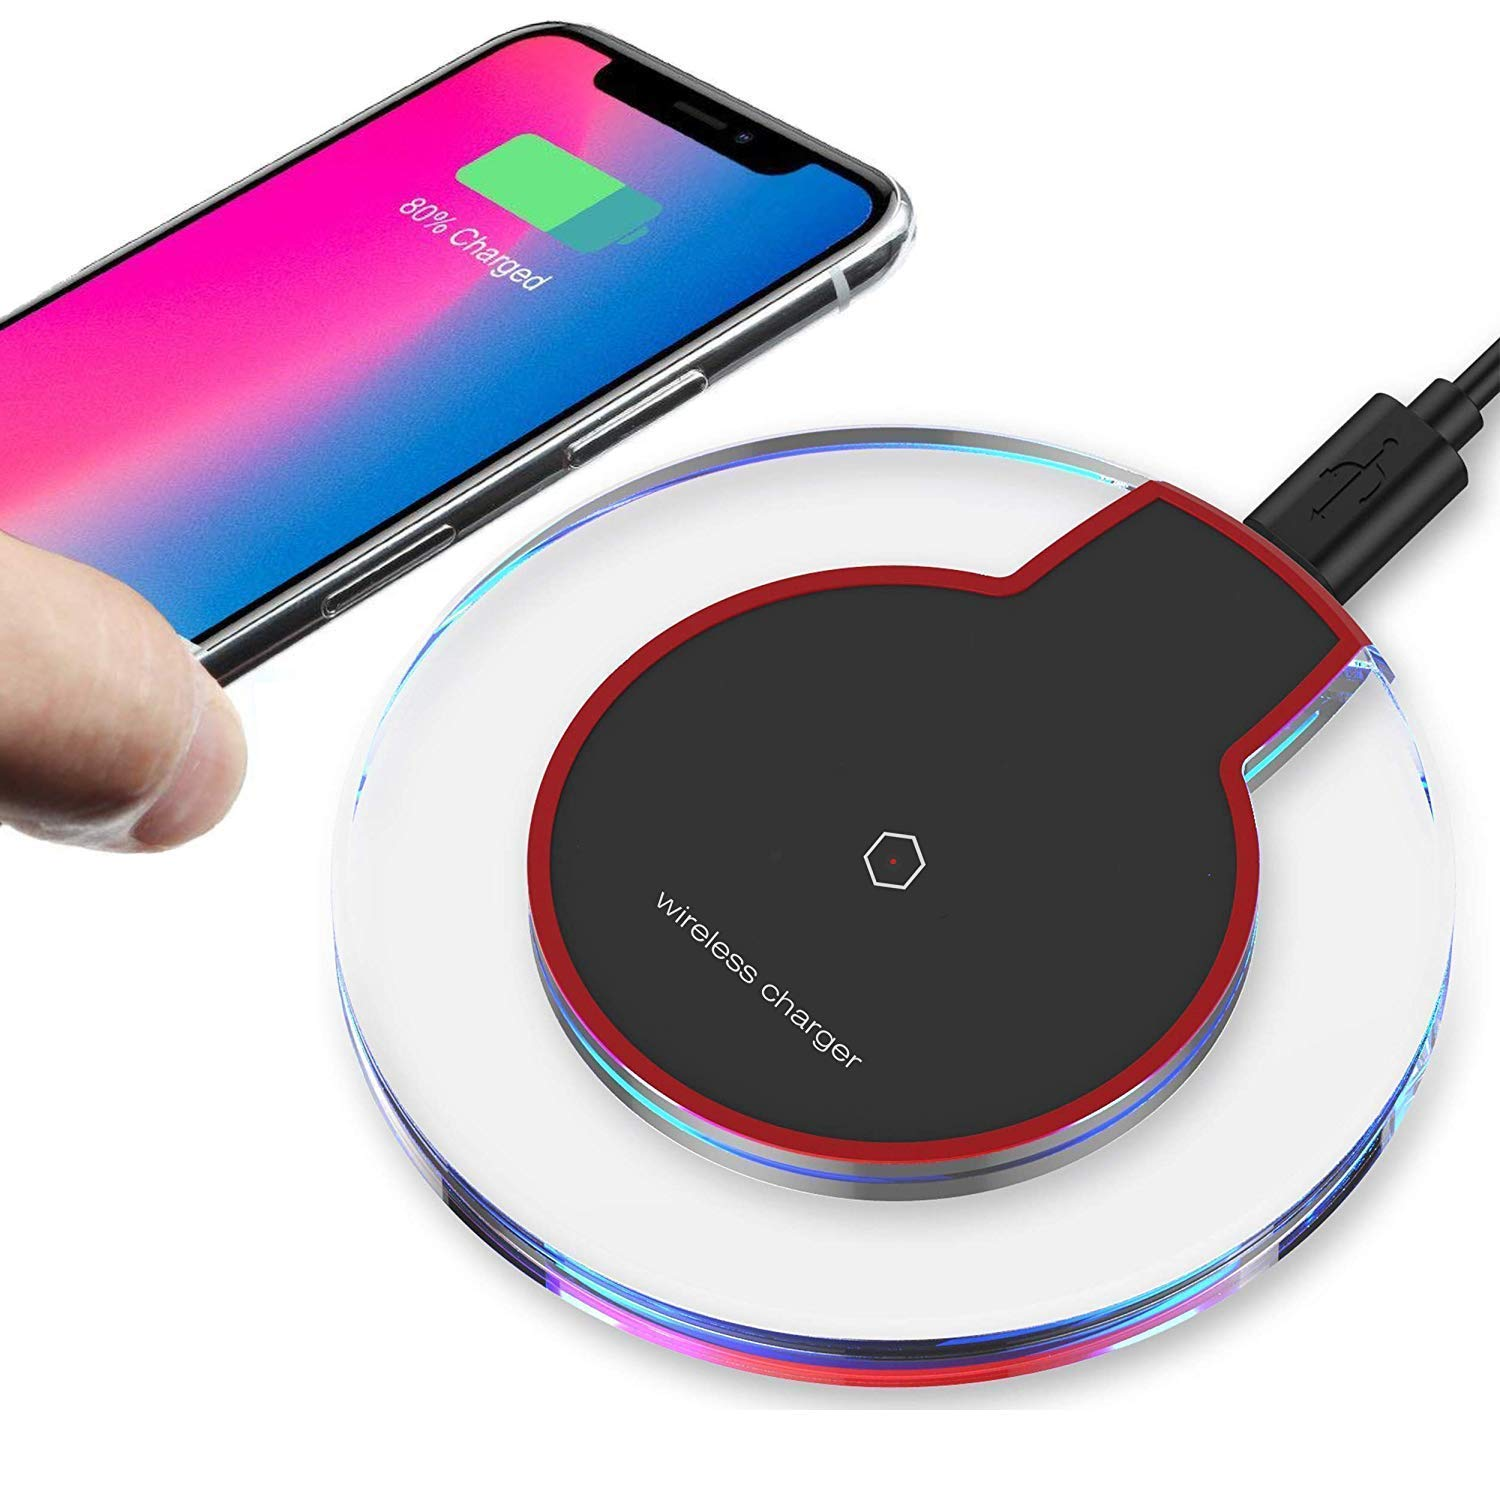 2019 Updated Wireless Charger Qi Wireless Charger Pad Compatible with ¡Phone Xs MAX XR X 8 8 Plus 7 7 Plus 6s 6s Plus 6 6 Plus and More DDCC010